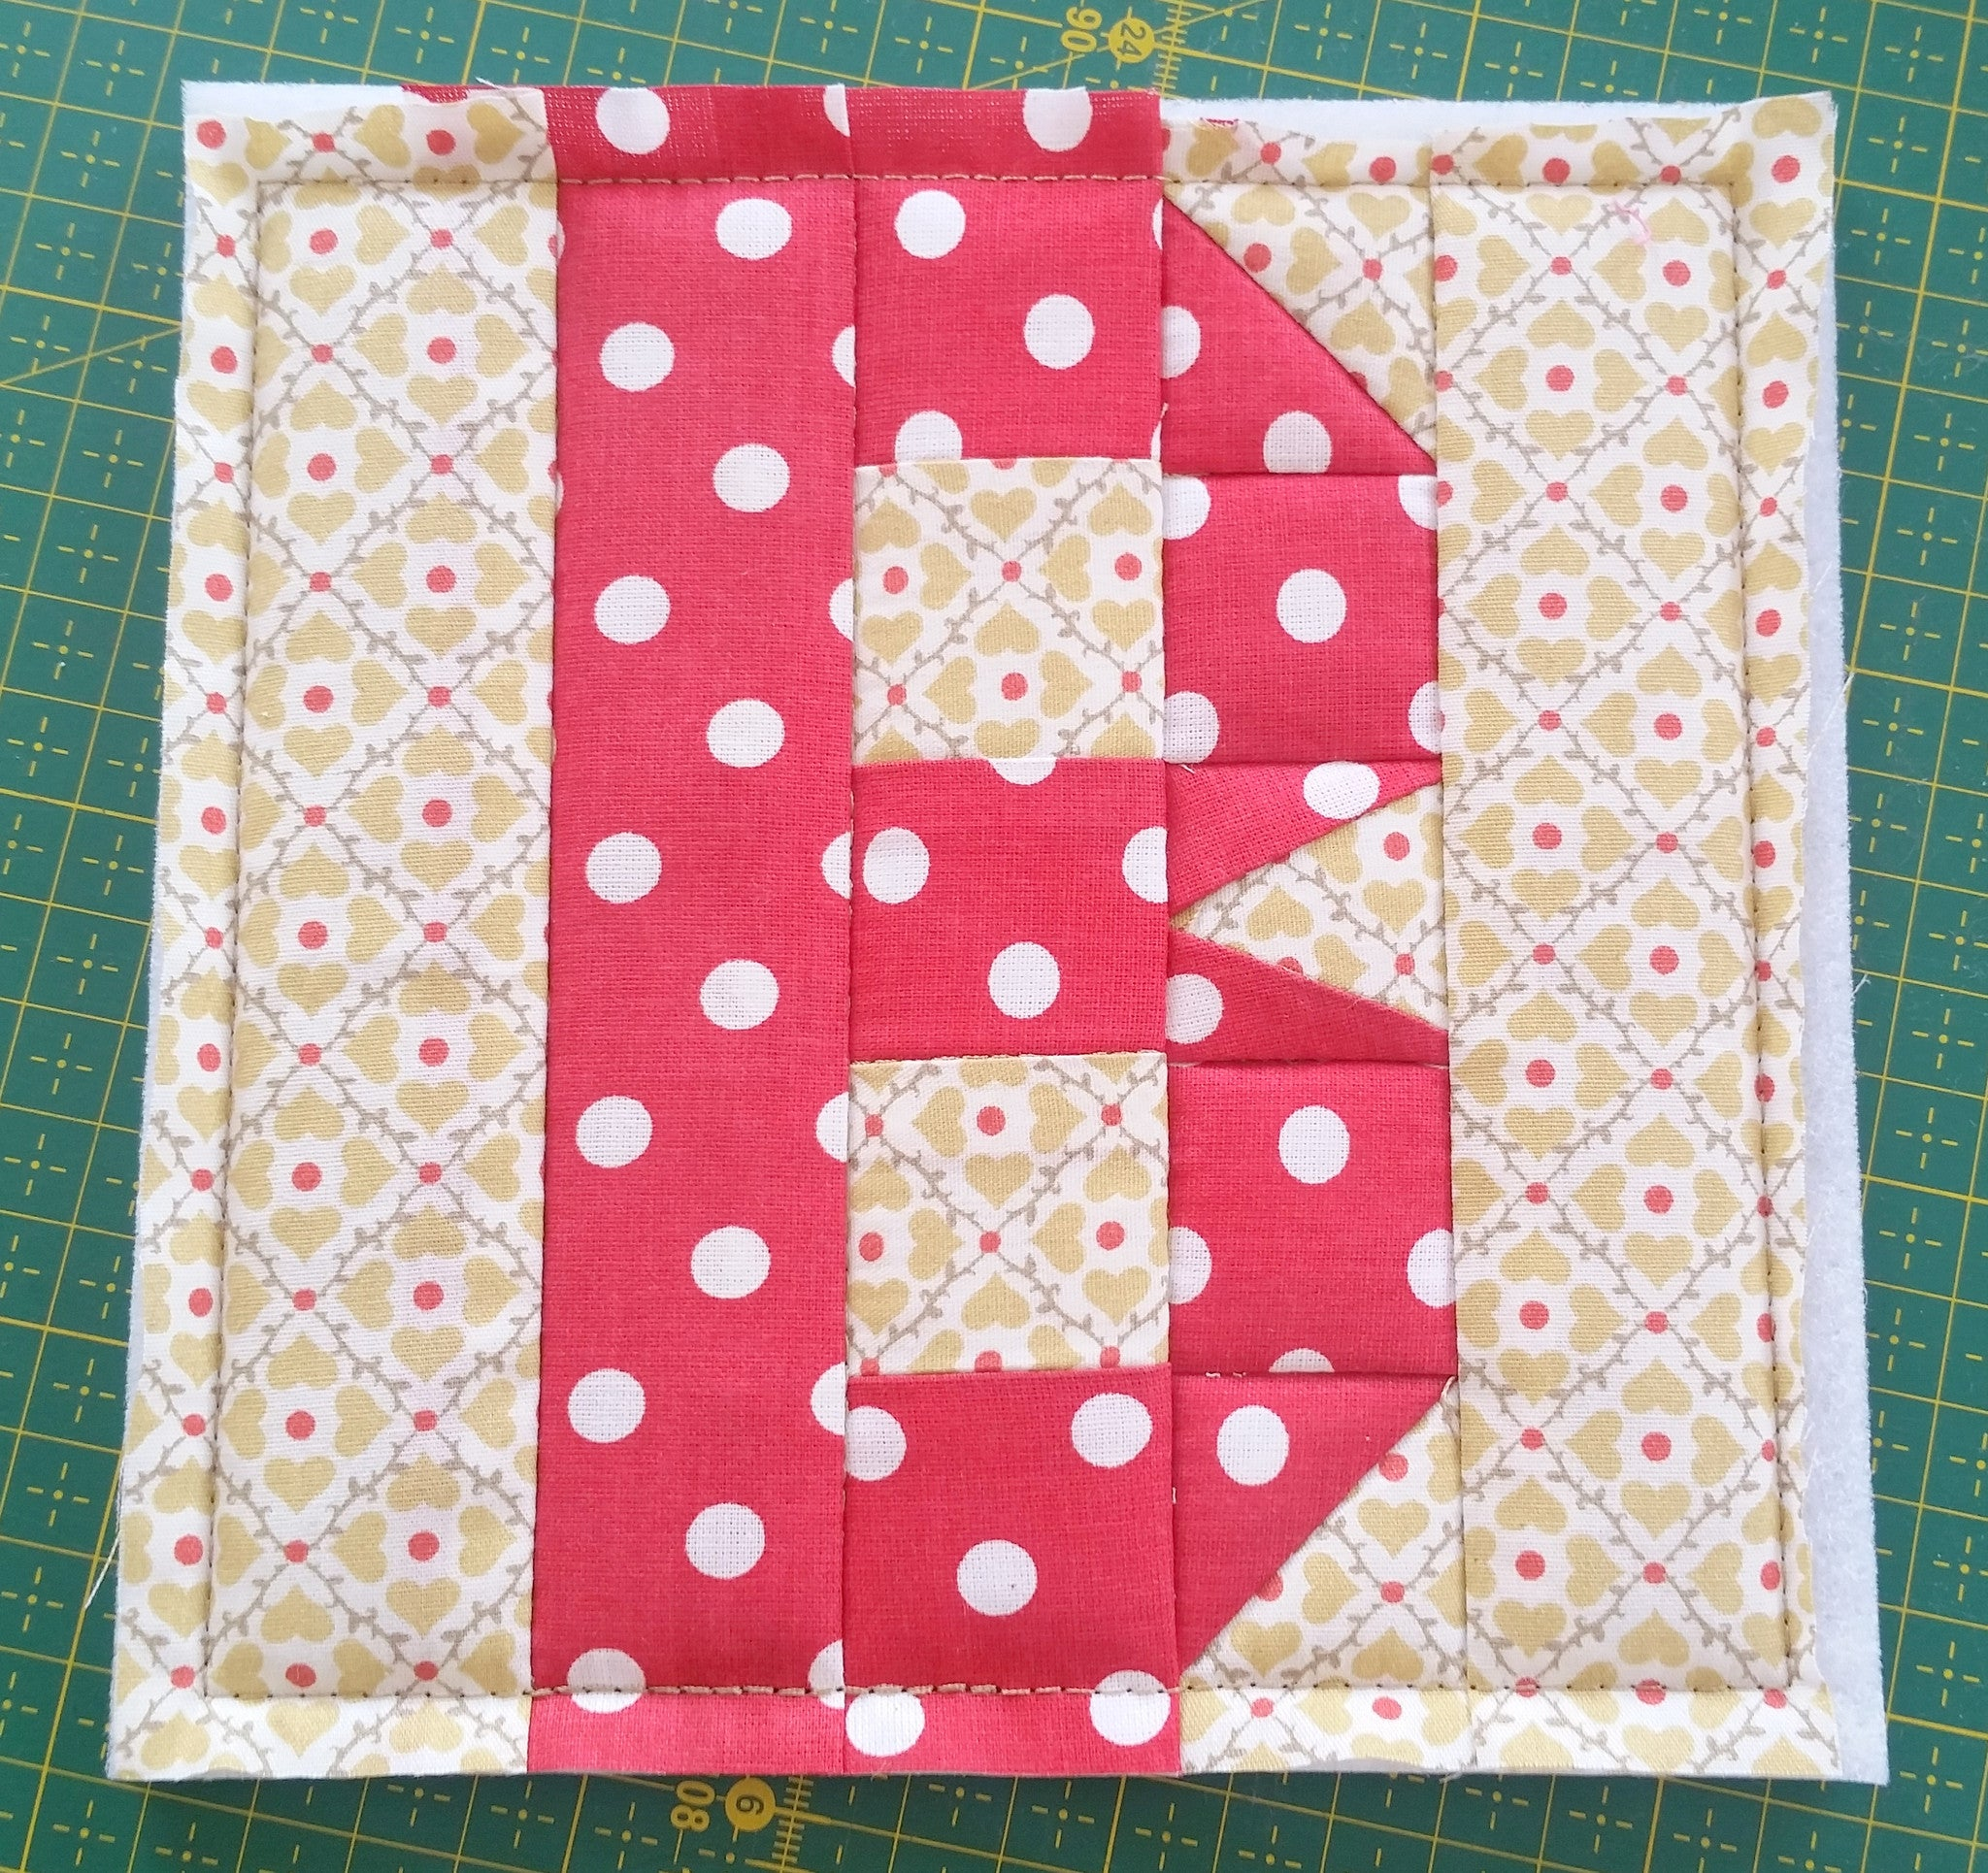 ITH LETTER B QUILT BLOCK